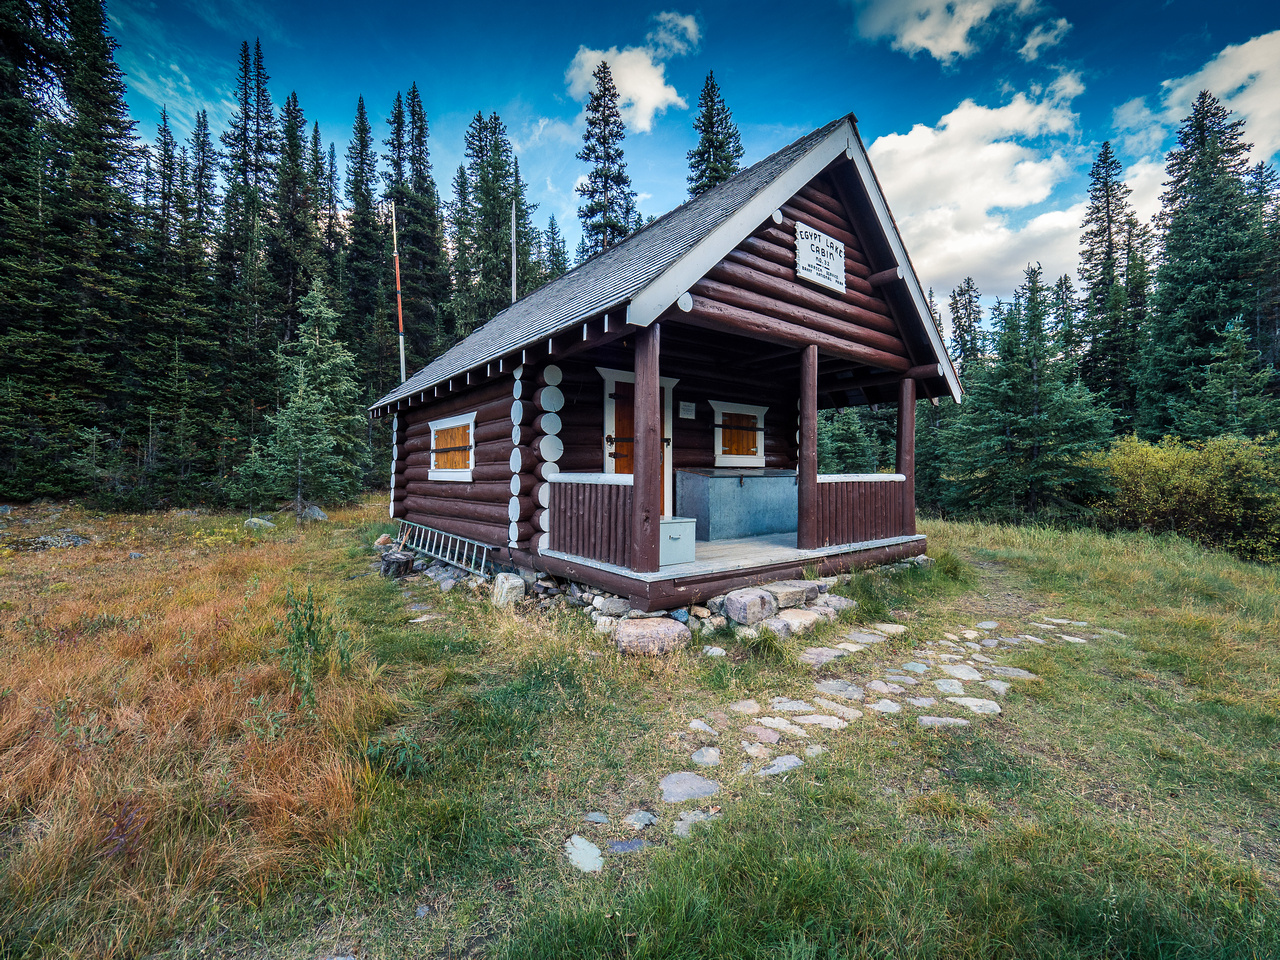 The Egypt Lake warden cabin.